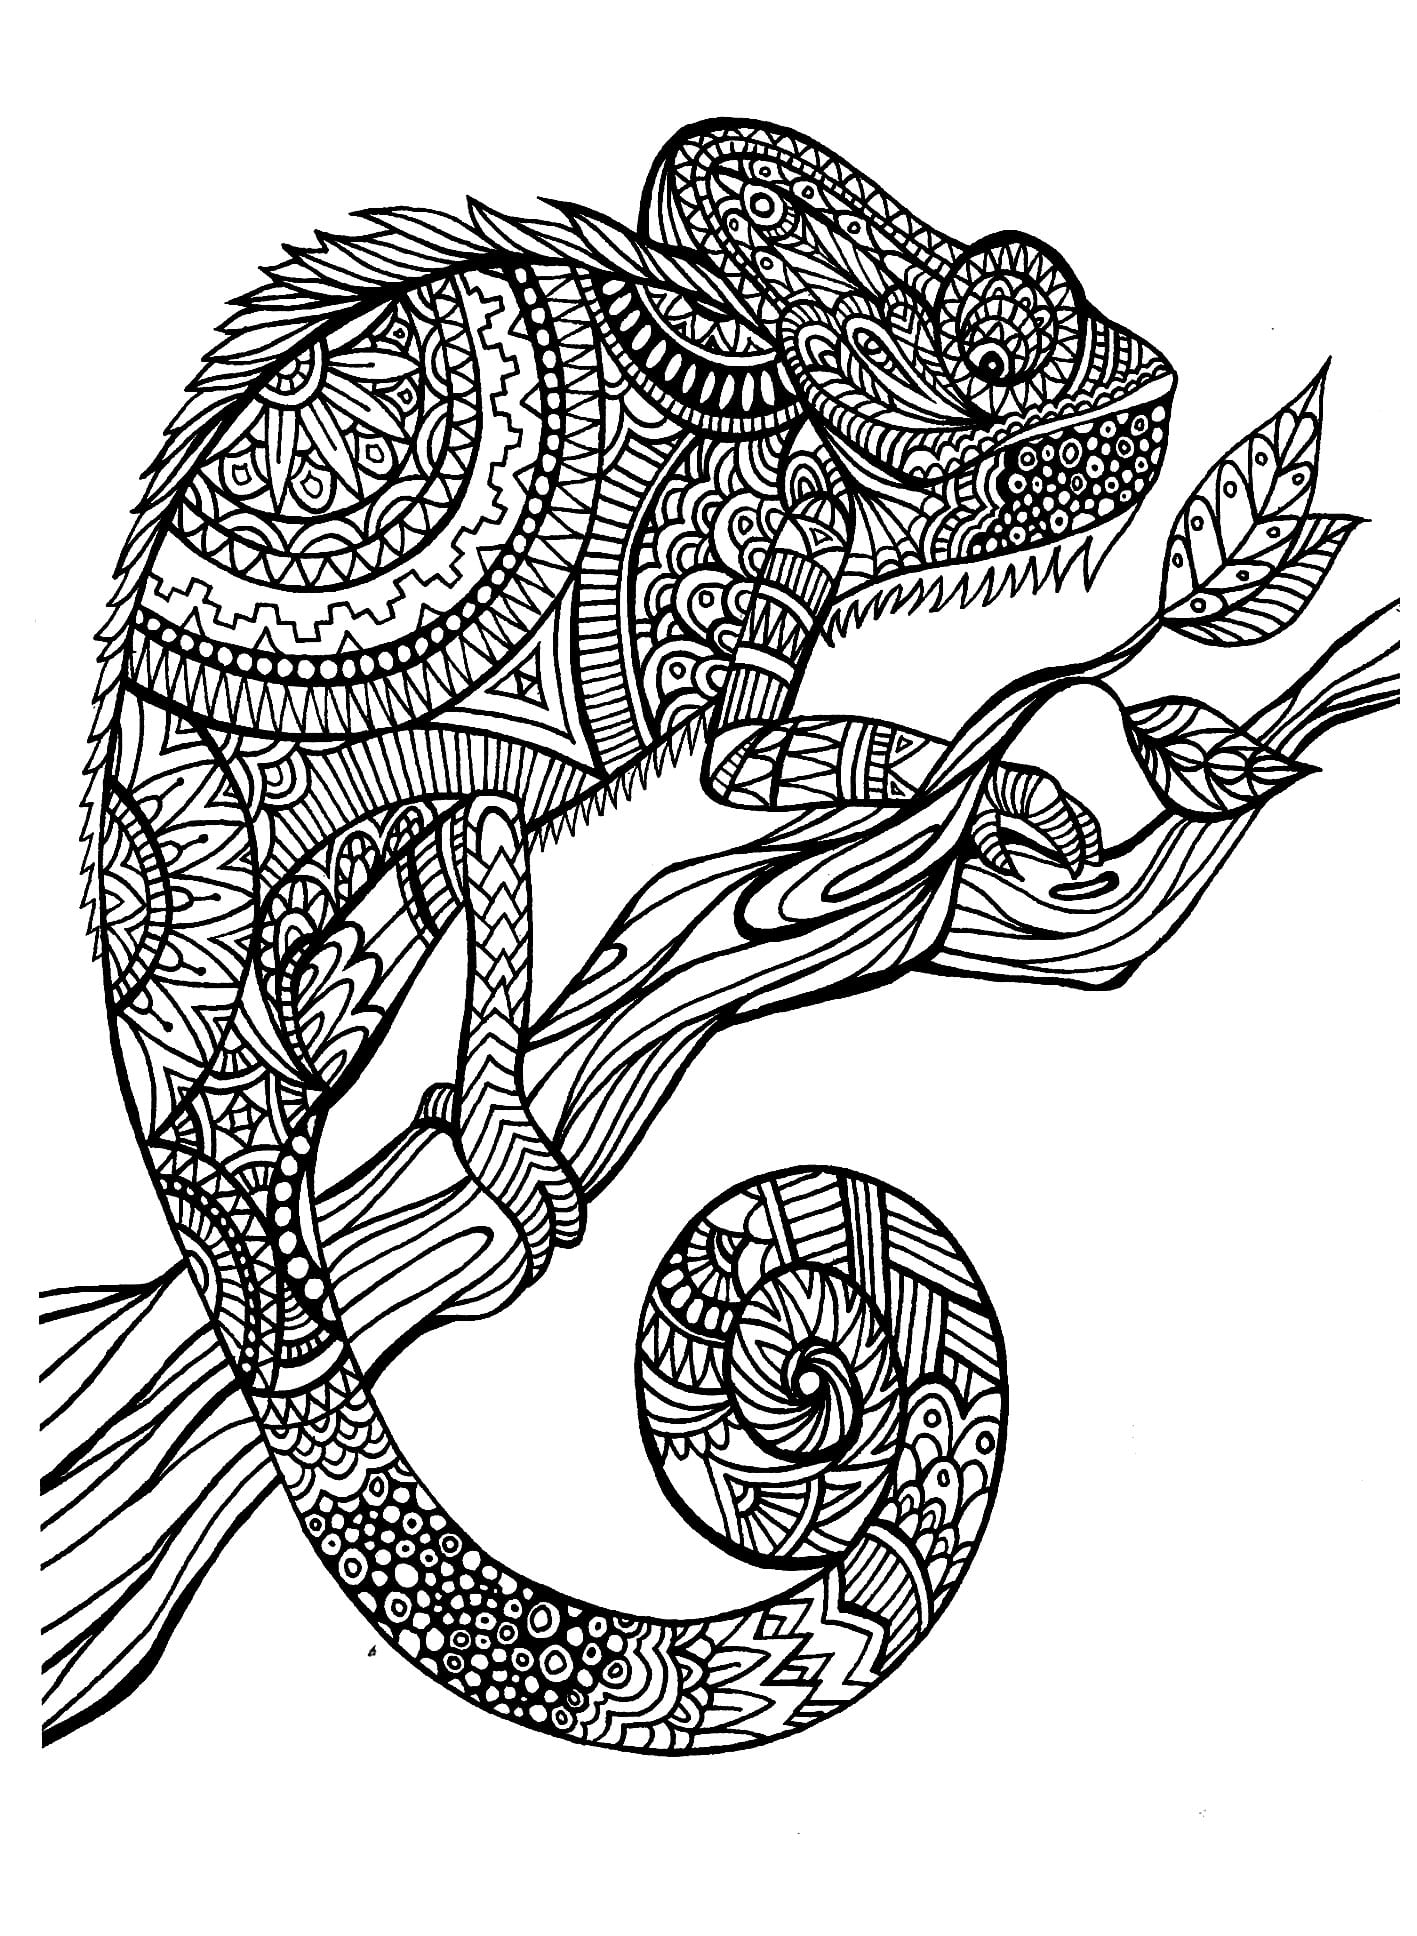 Peaceful Design Animal Coloring Pages For Adults Chameleon